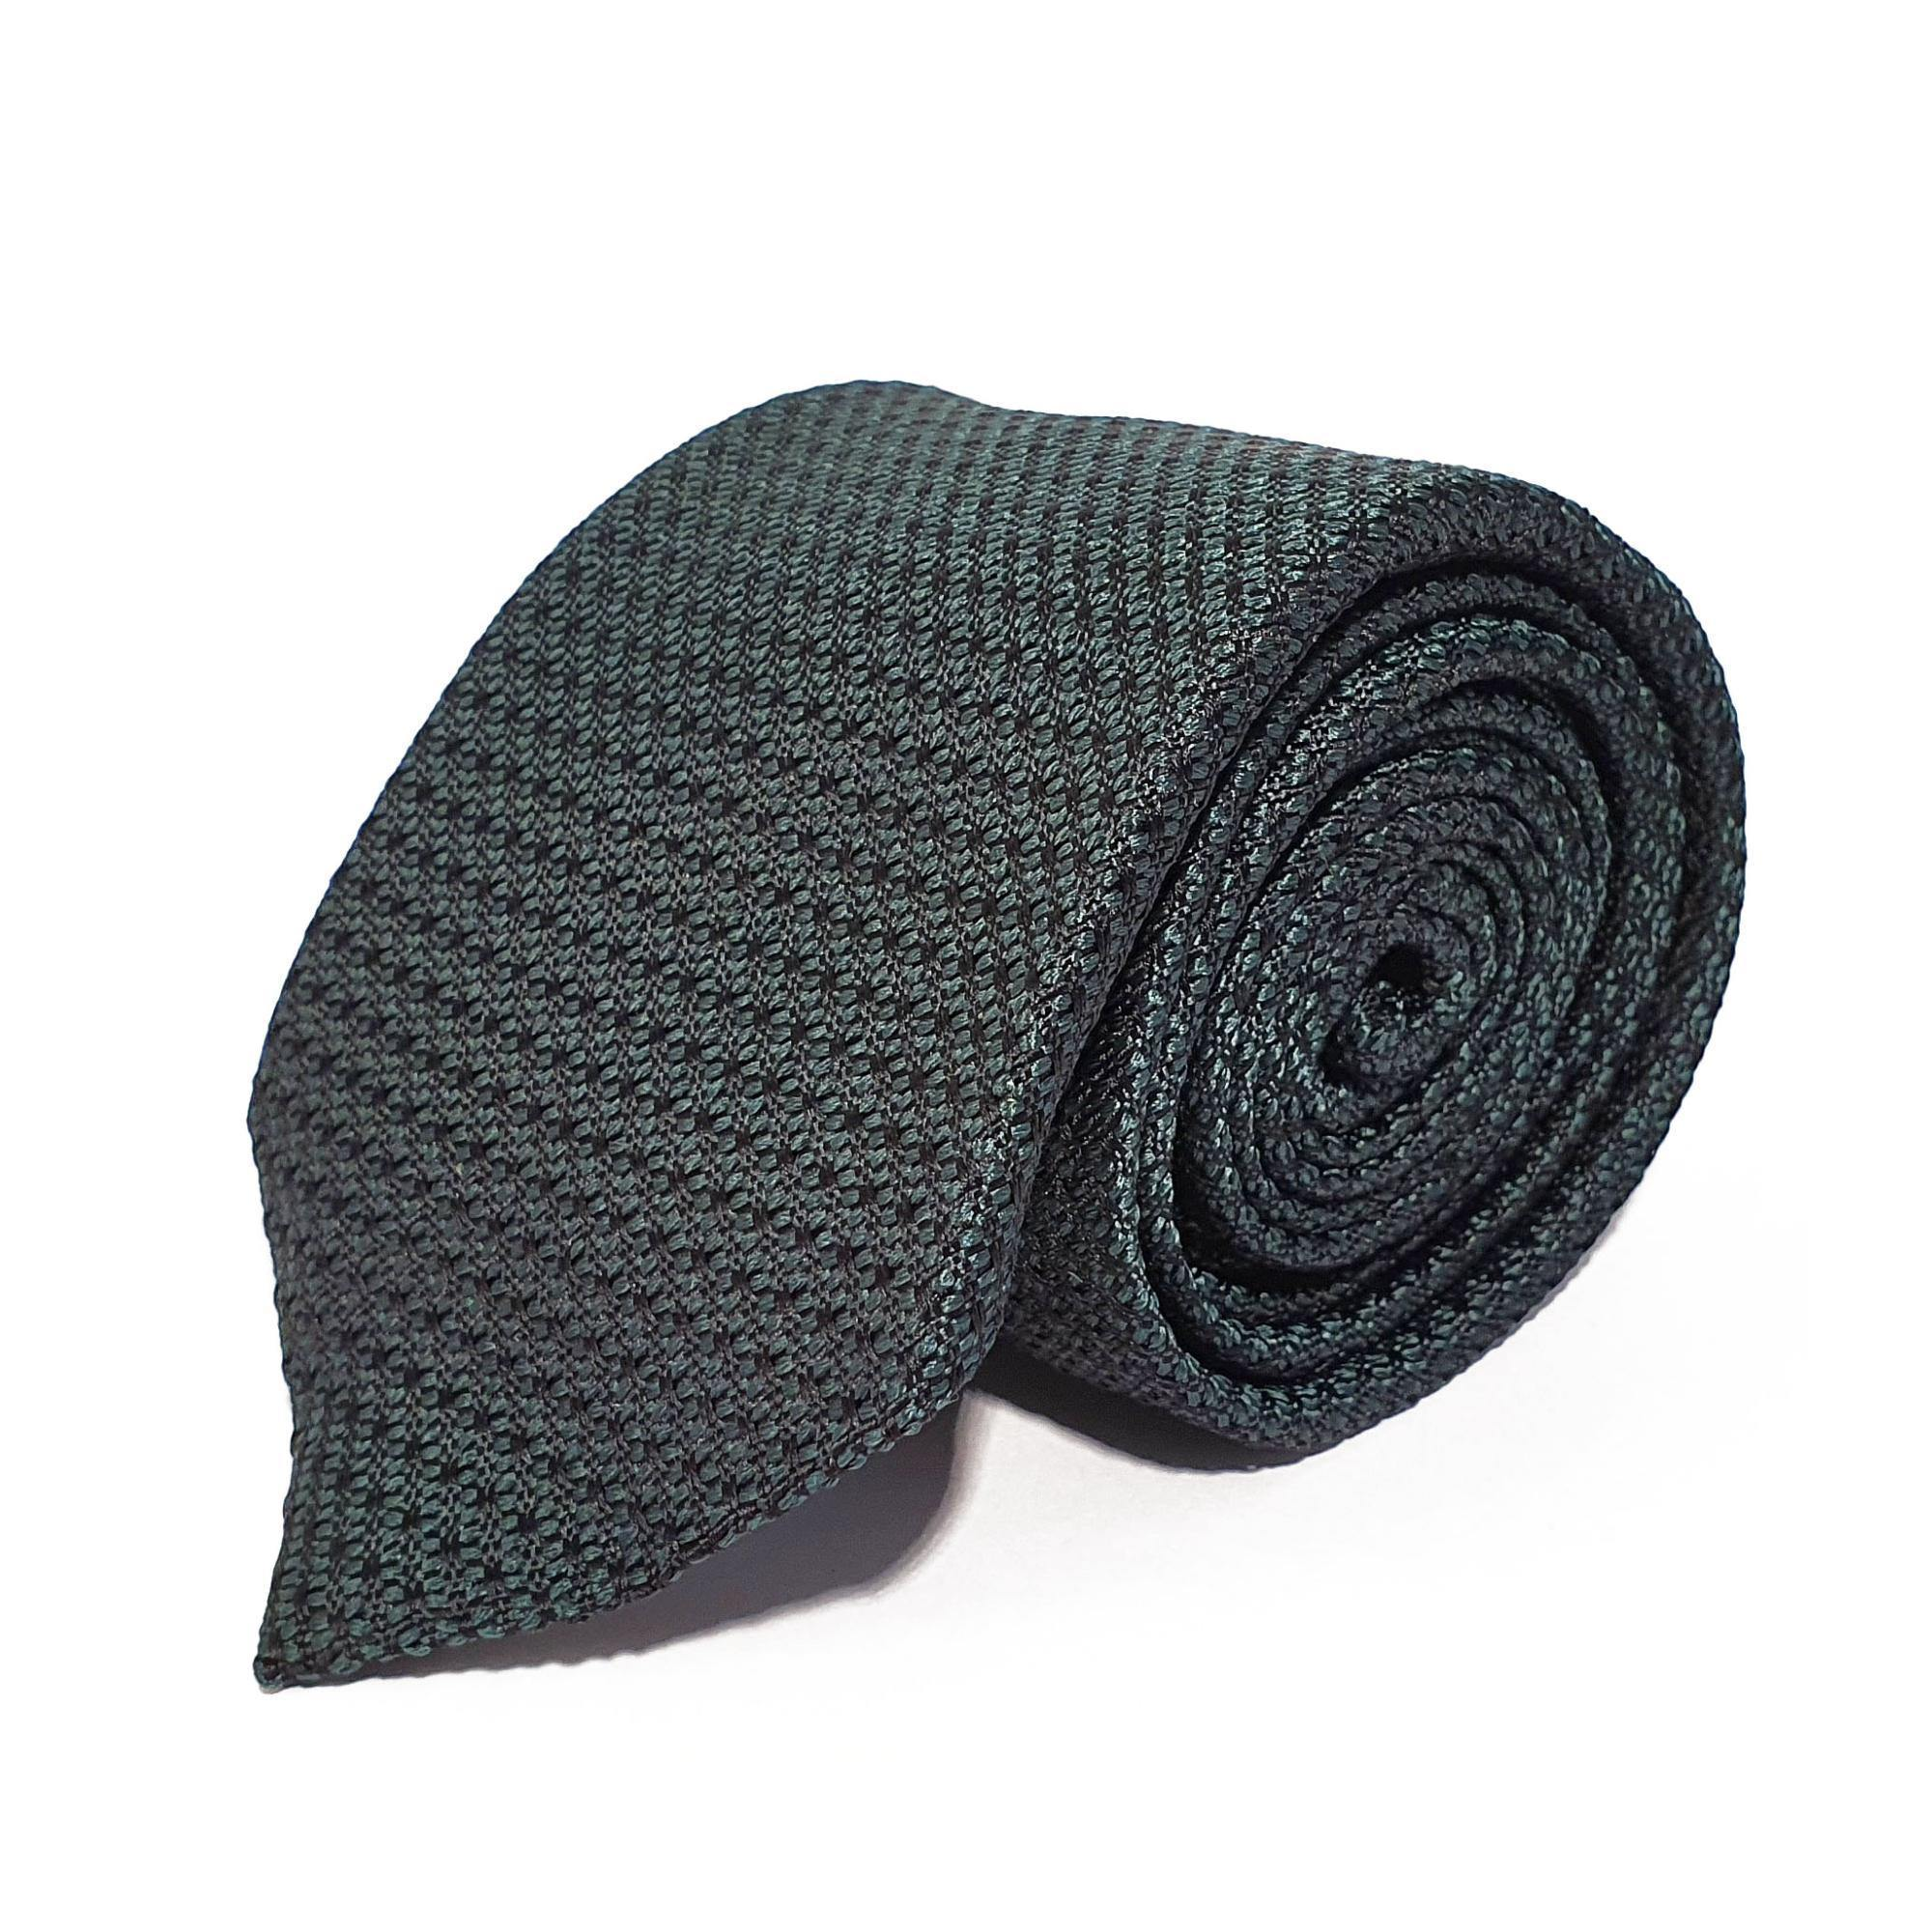 Green Plain Weave Formal Silk Tie Hand Finished - British Made